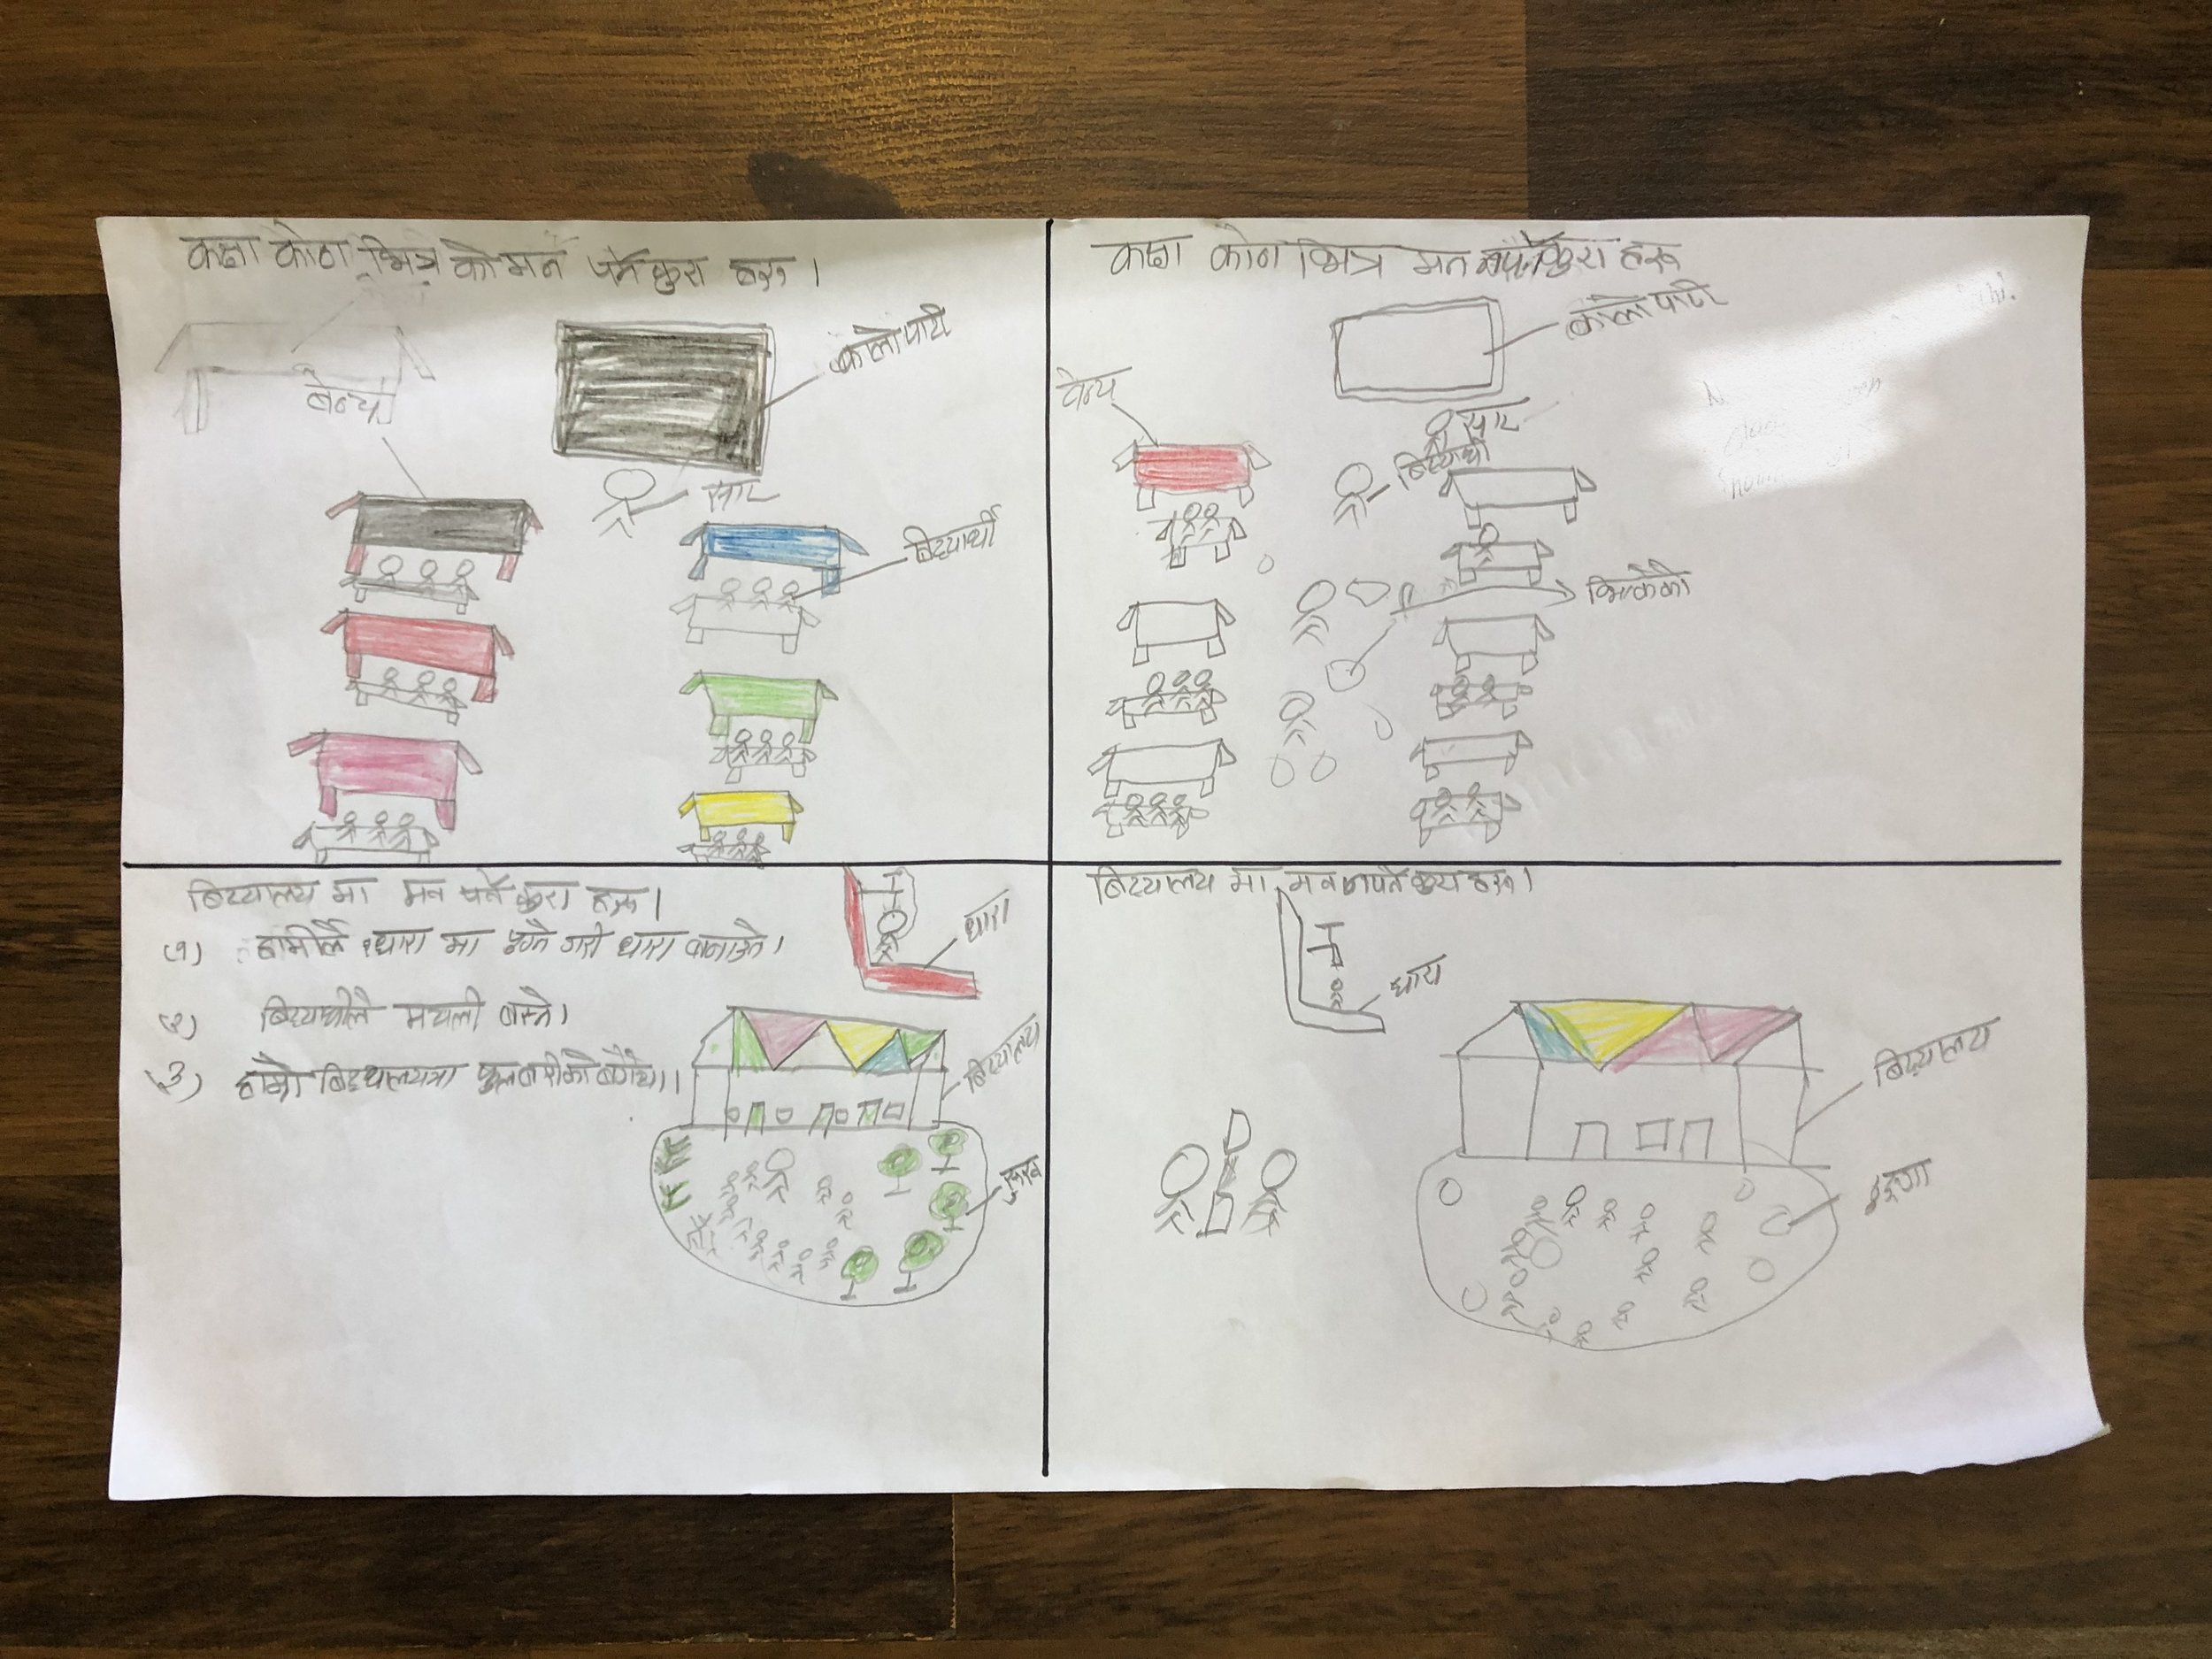 An example of the individual reflection activity.